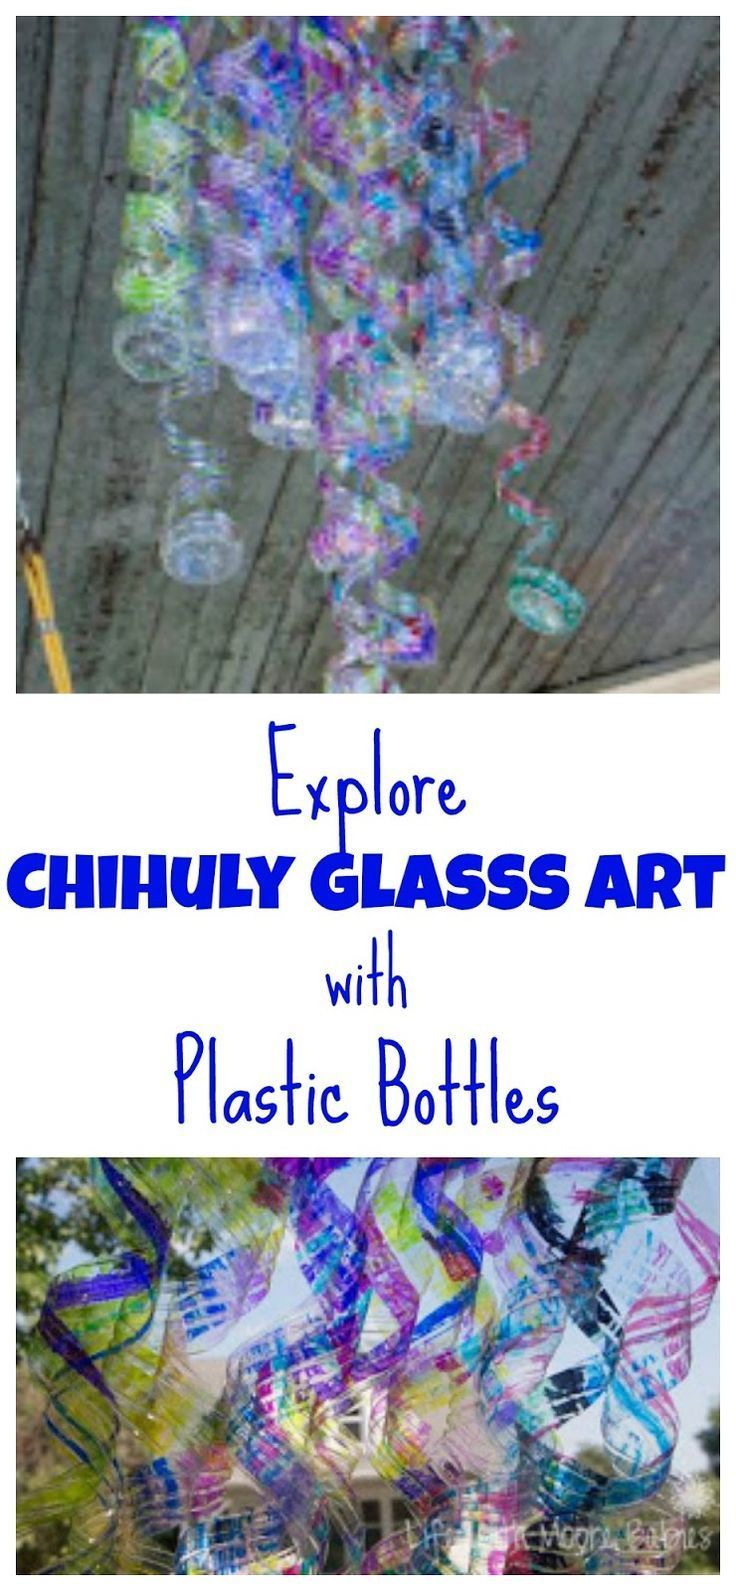 A fun sculpture project for kids that uses recycled materials to resemble glass sculpture.